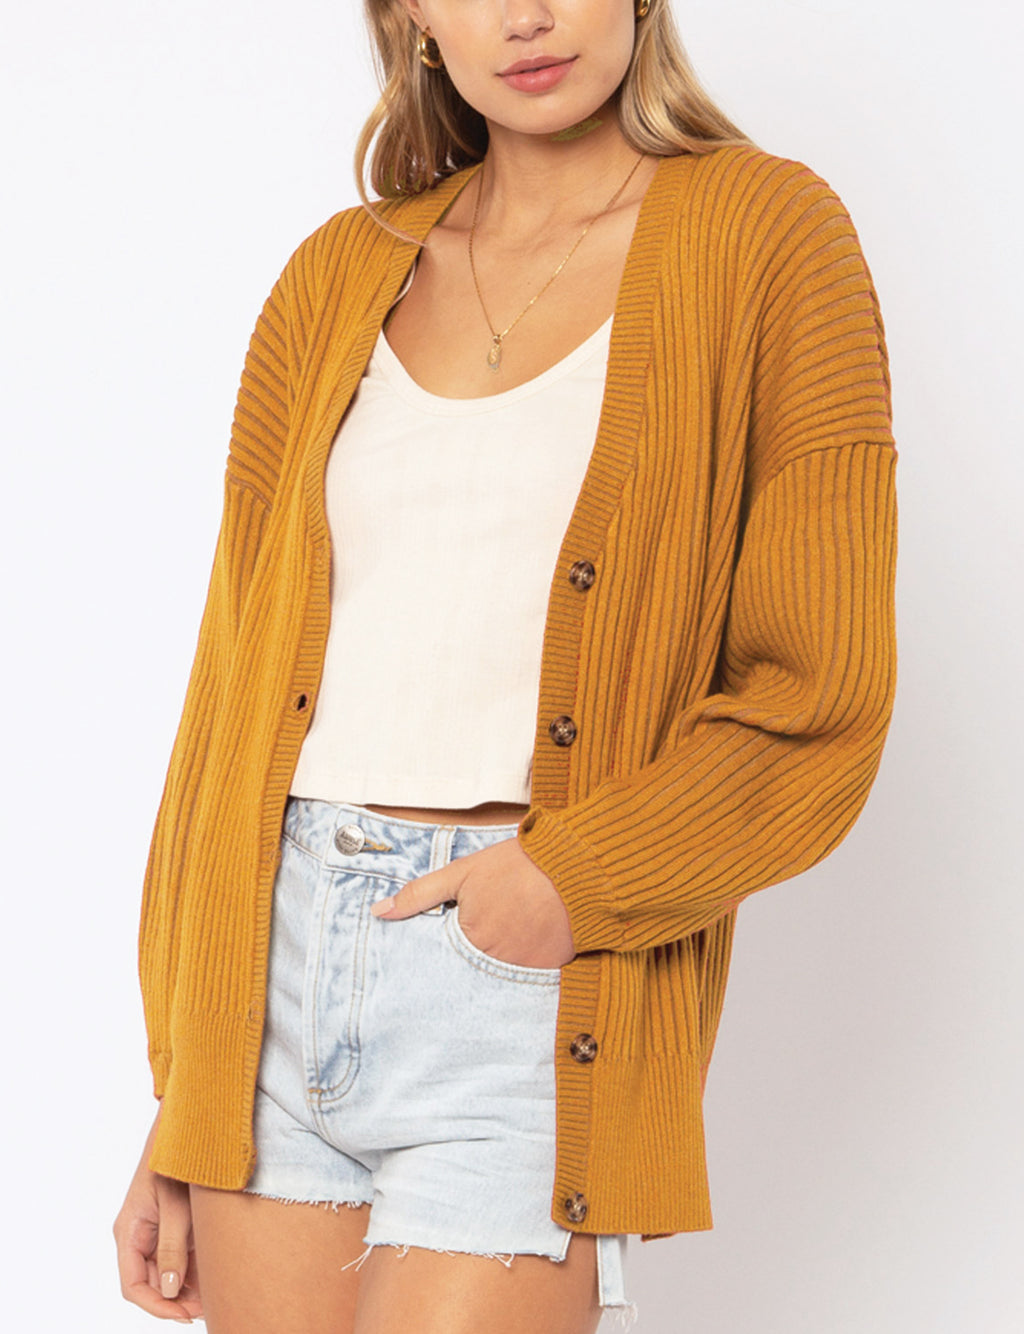 Amuse Society Baya L/S Knit Cardigan in Amber Light